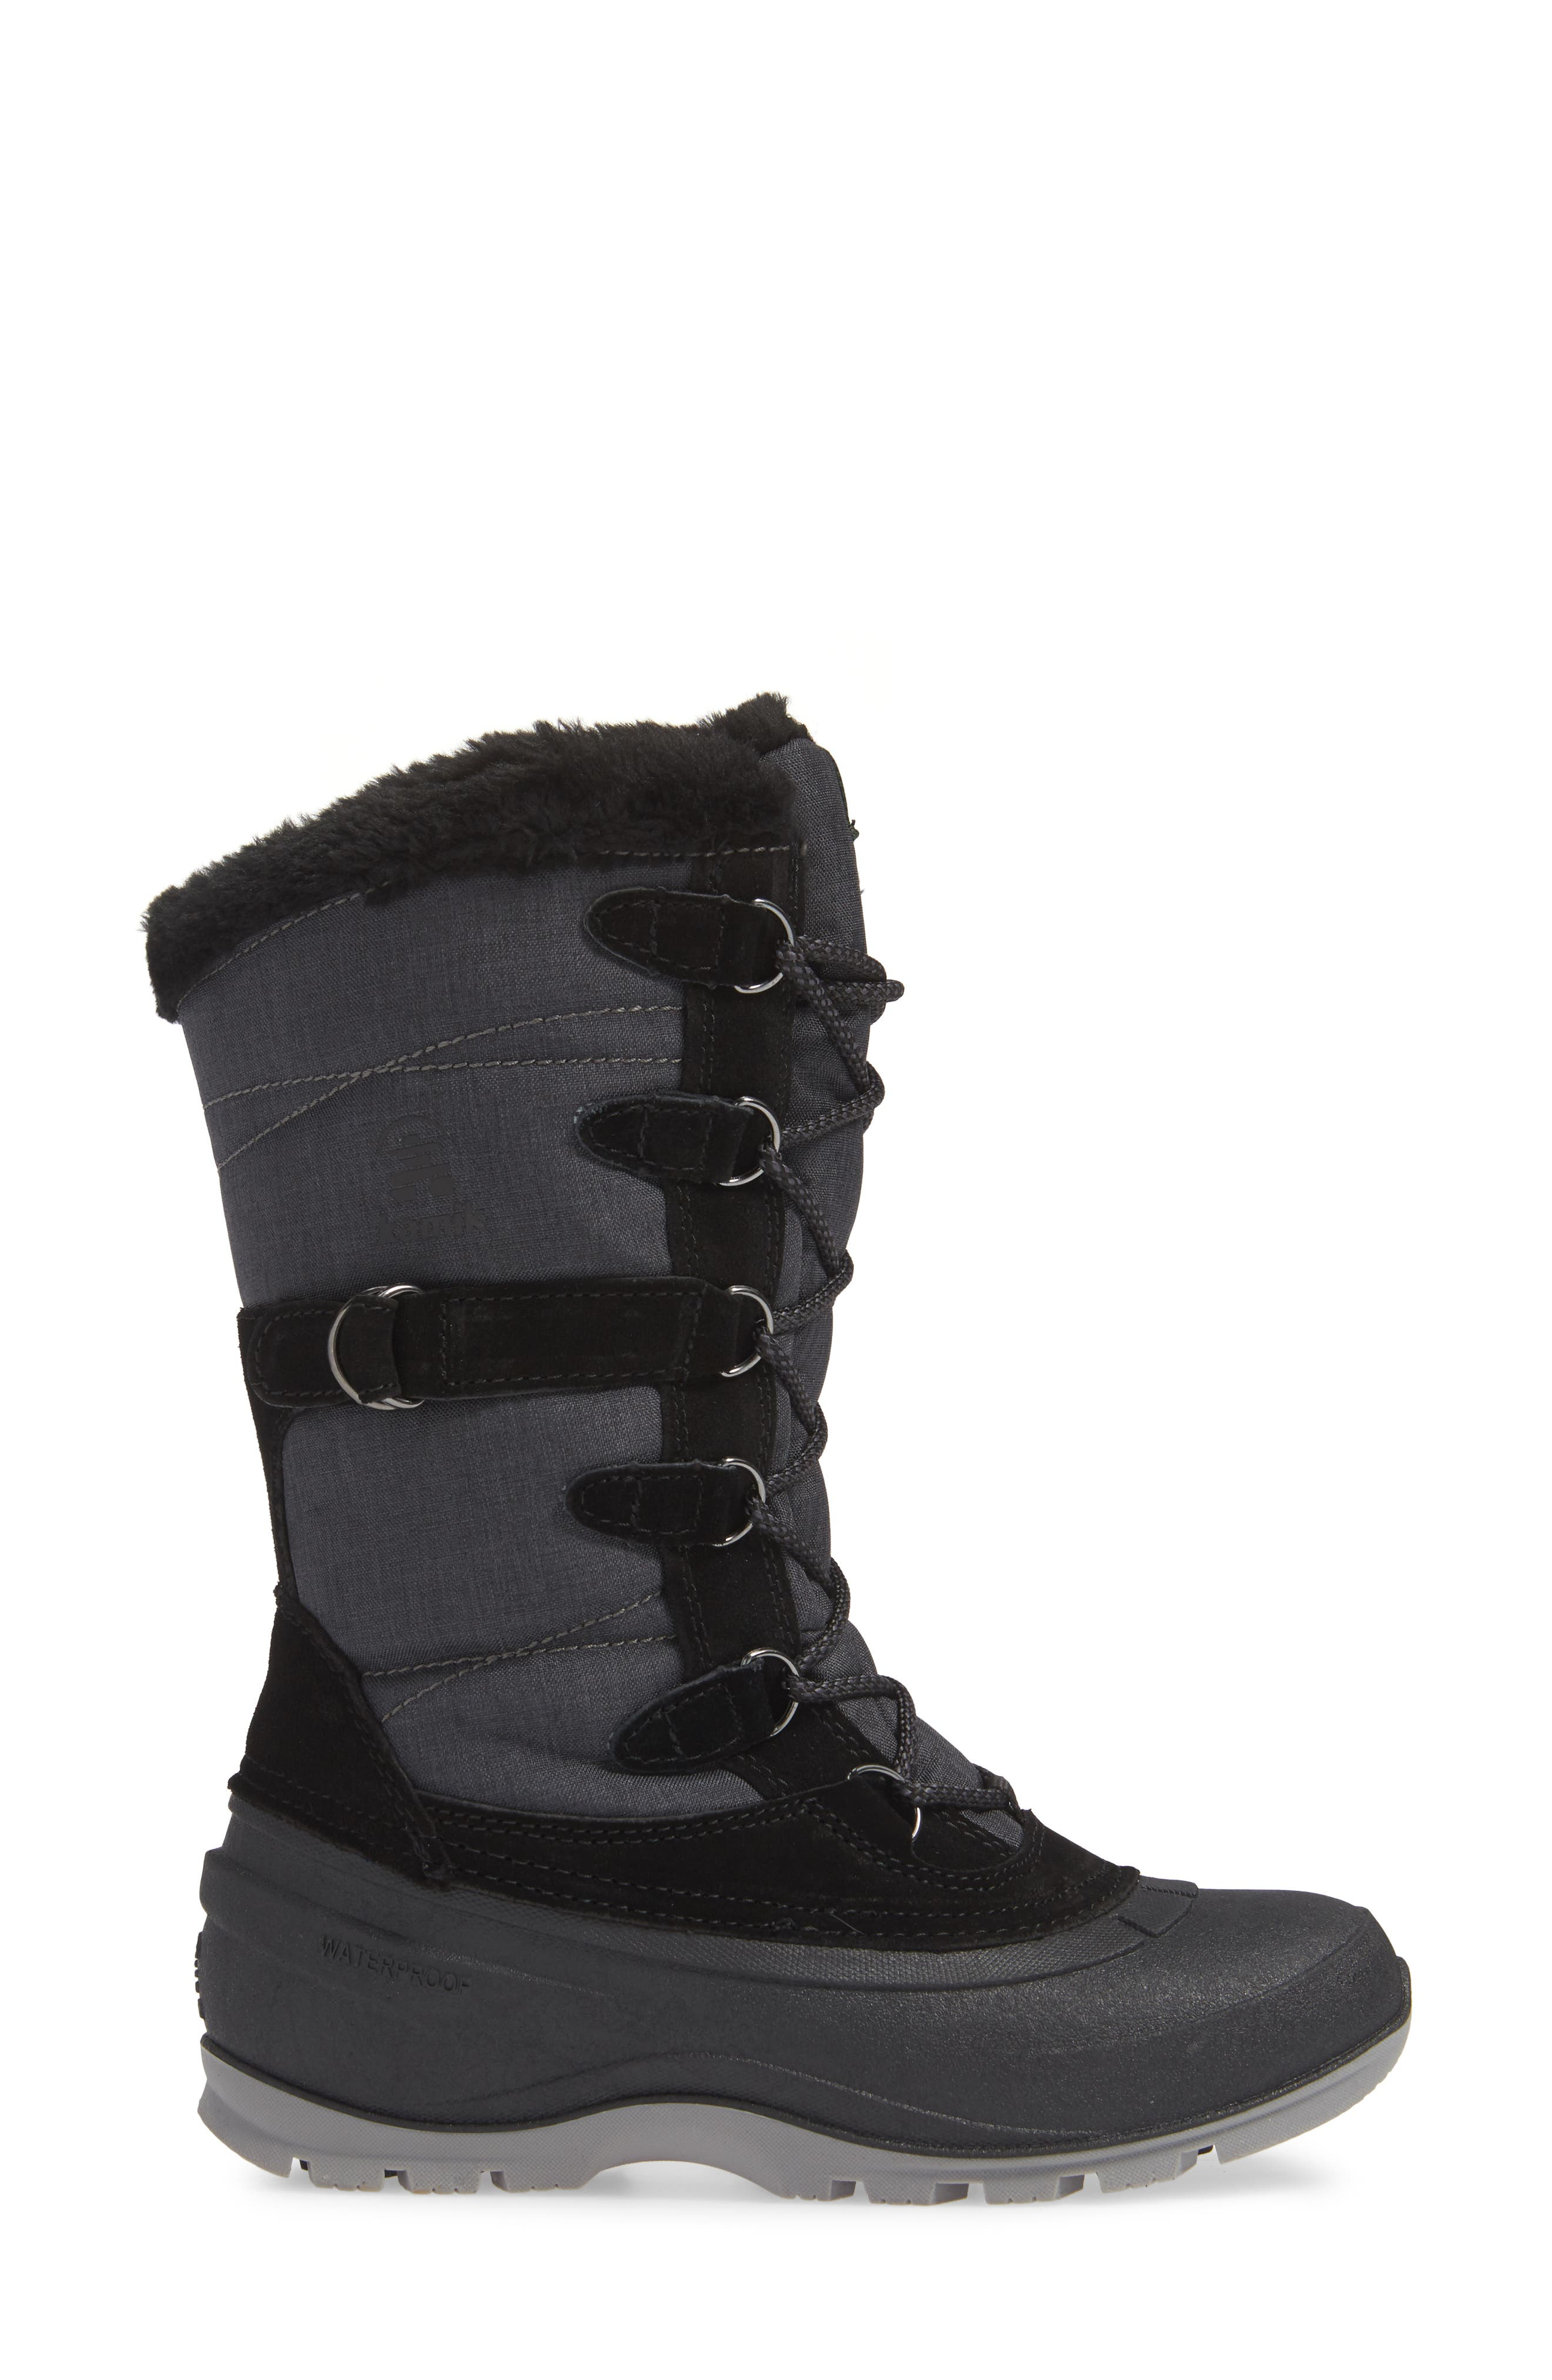 Snovalley2 Waterproof Thinsulate<sup>®</sup>-Insulated Snow Boot,                             Alternate thumbnail 3, color,                             BLACK